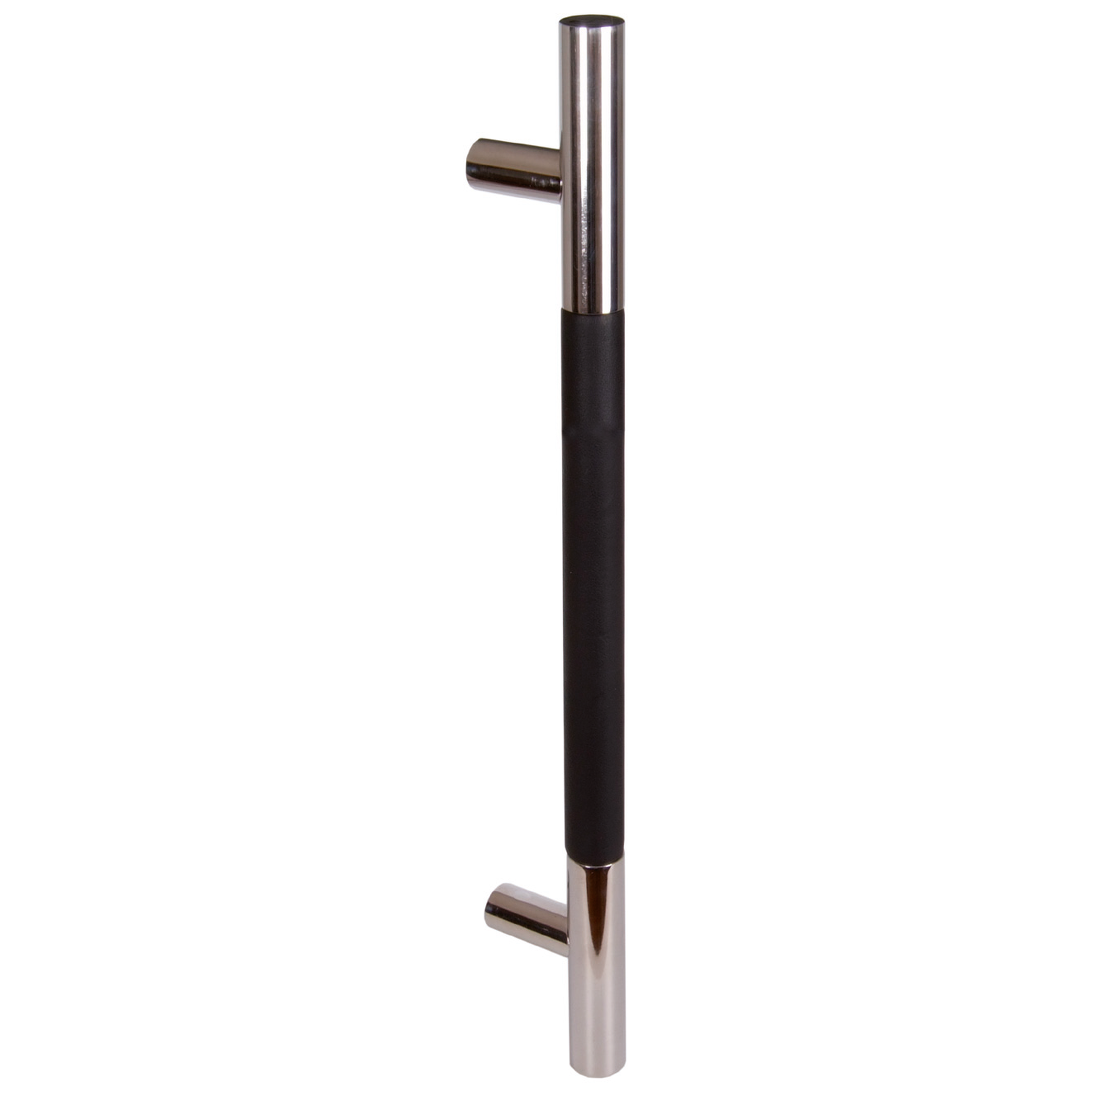 IMPERO/LEATHER BLACK, PLAIN, POLISHED, DRILLING DISTANCE 400MM, SINGLE HANDLE